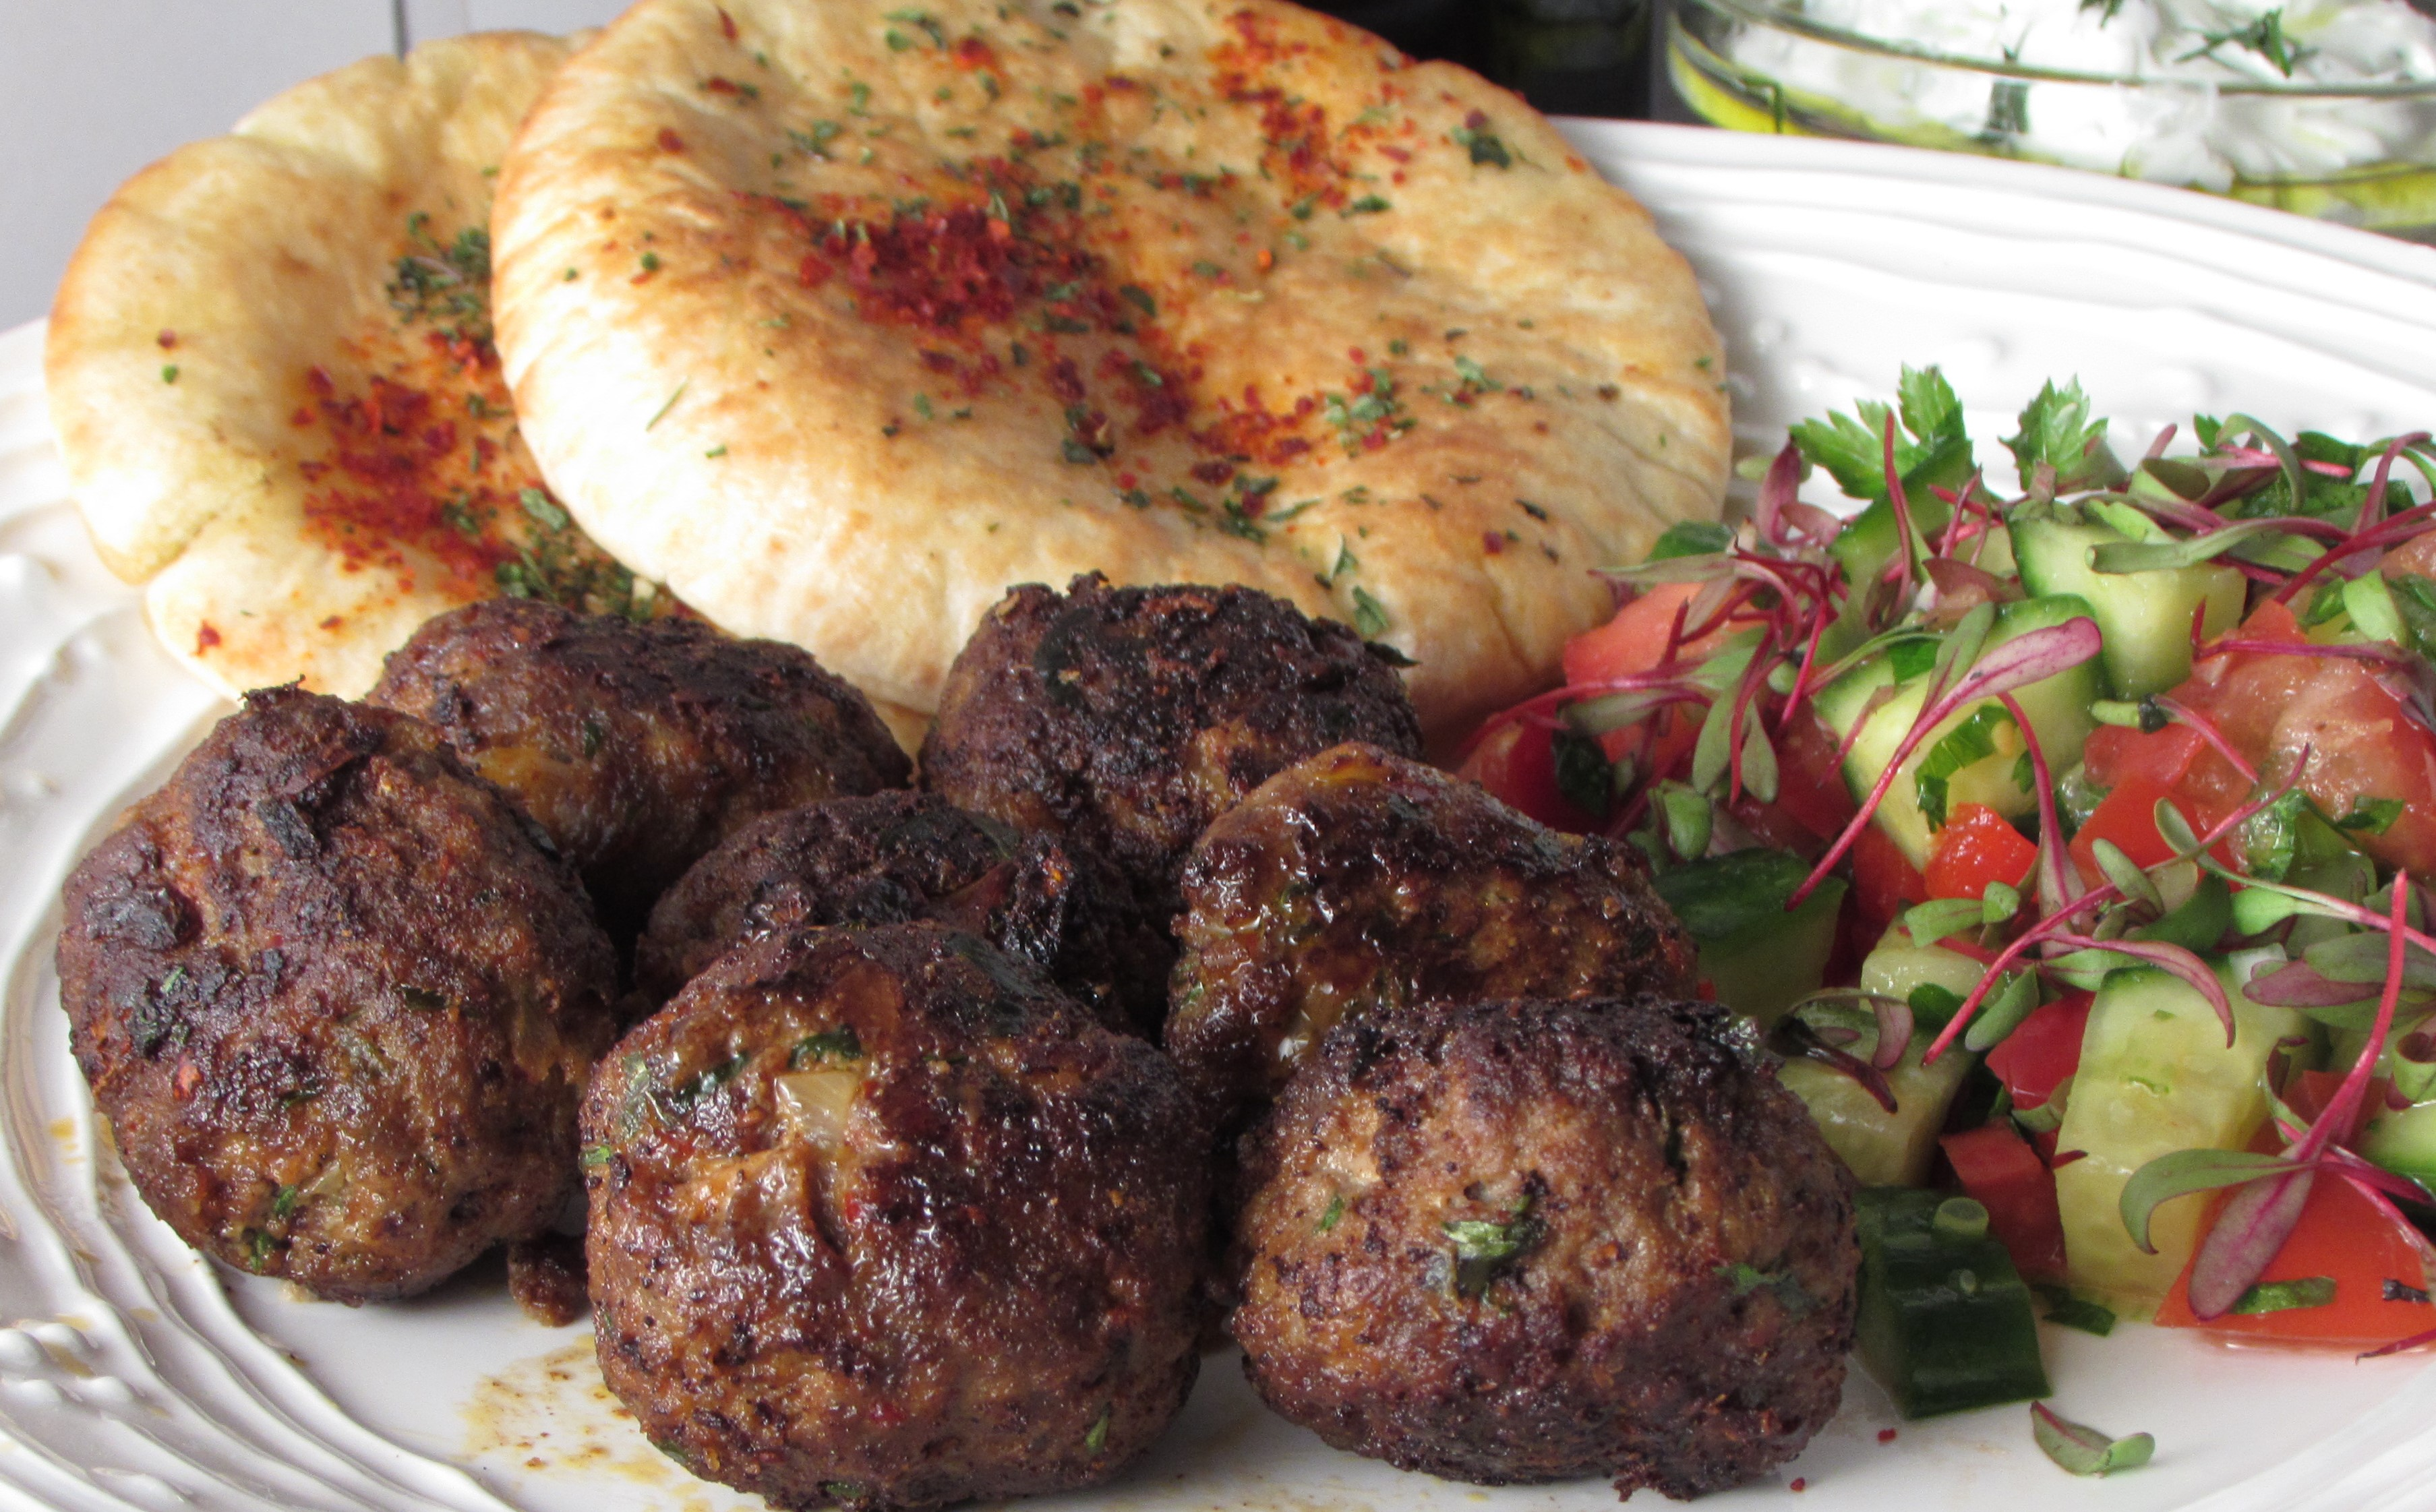 Posted in Beef , Meatballs by Priyu